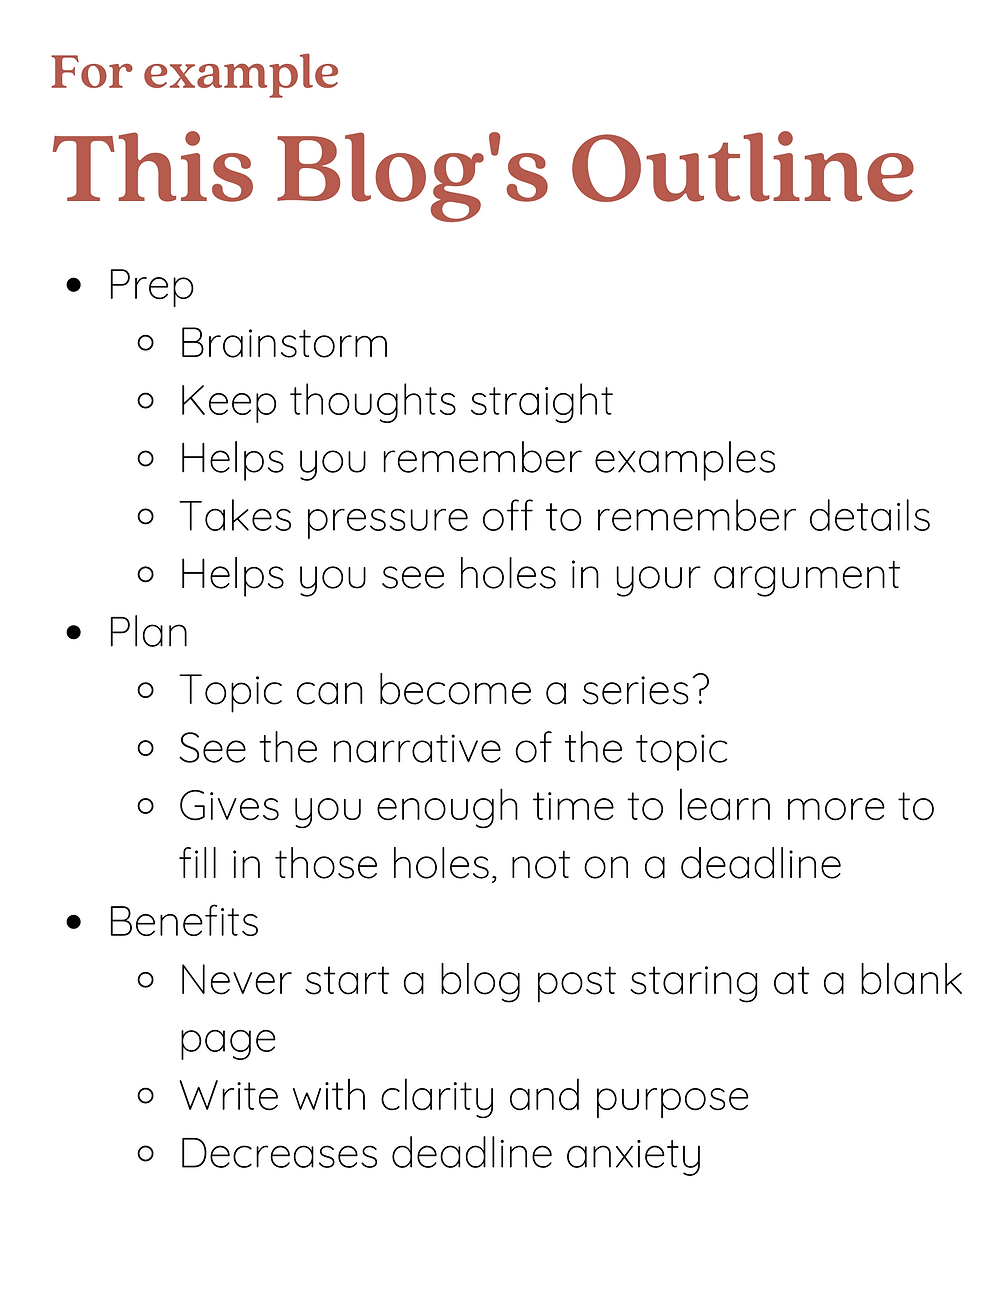 This is an example graphic of the outline I wrote for this blog post.